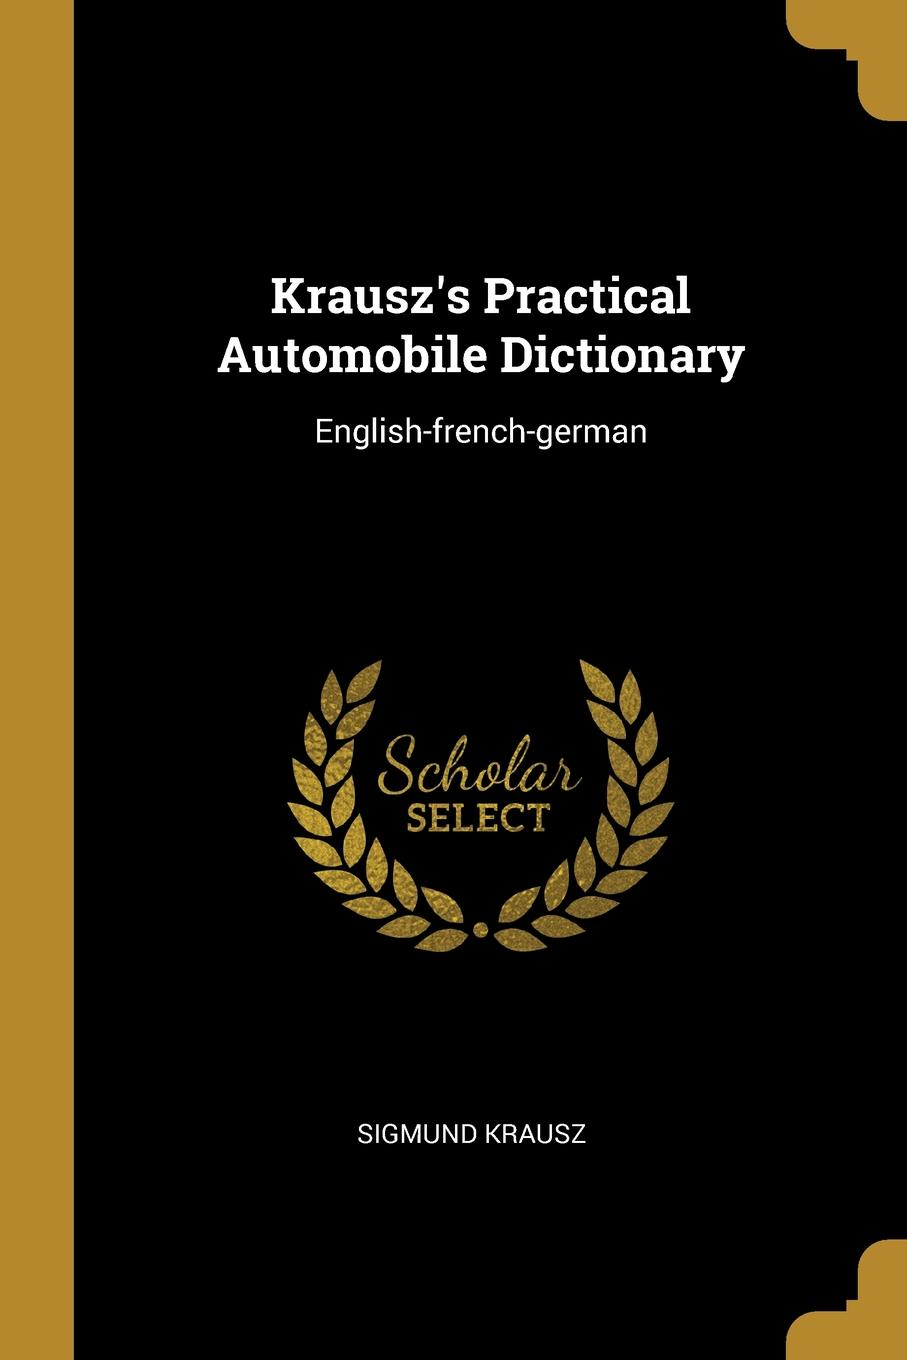 Sigmund Krausz Krausz.s Practical Automobile Dictionary. English-french-german